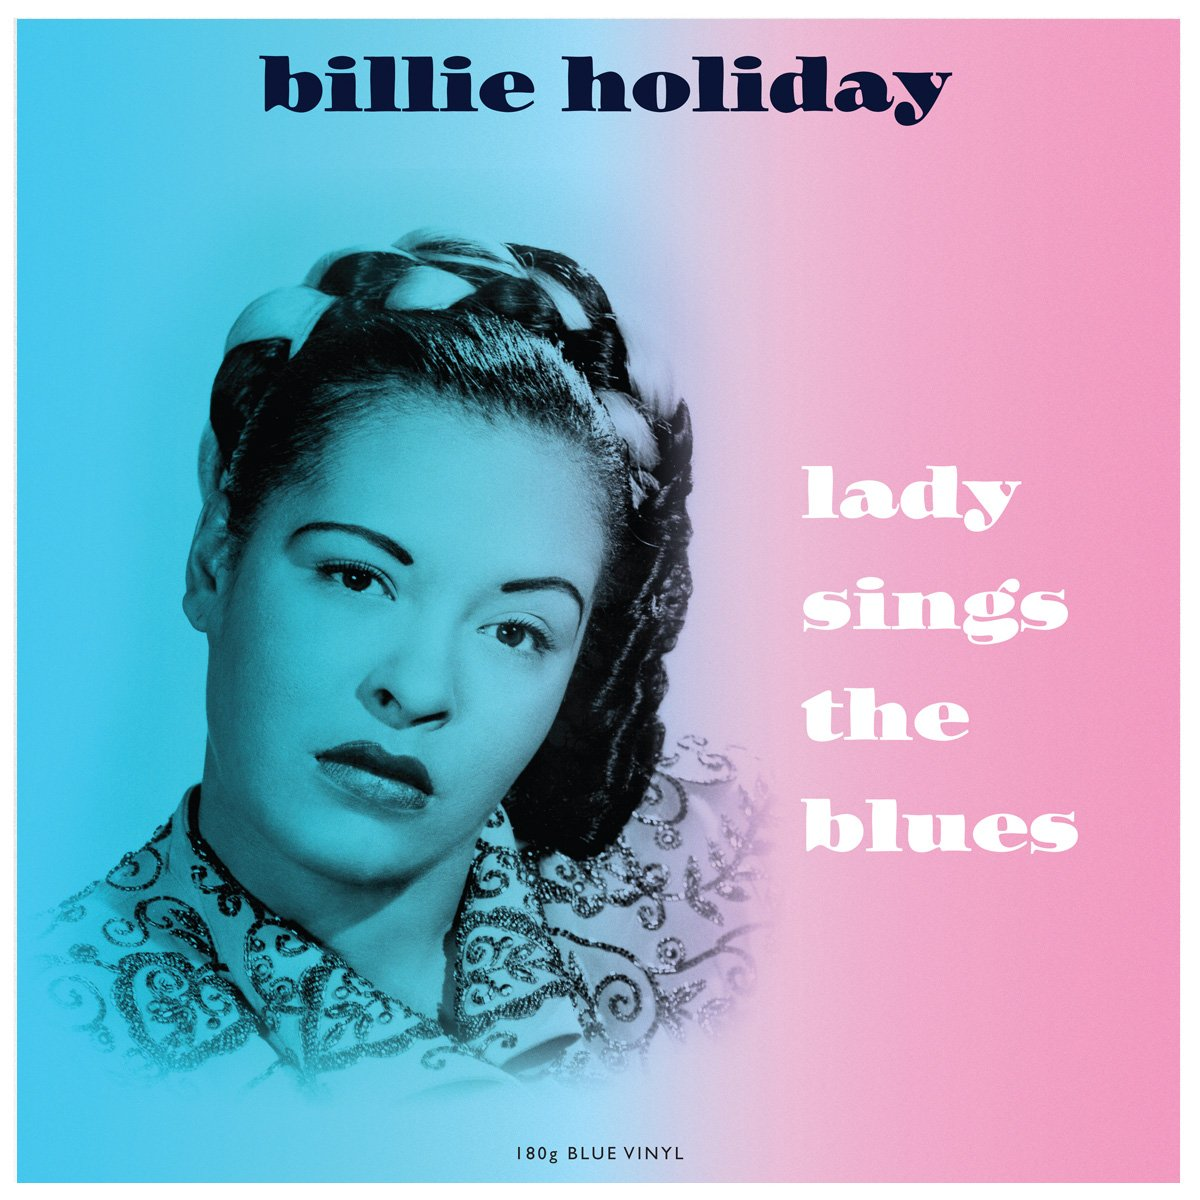 Sen Sible Atomic Flash Billie Holiday C 1950 Billie Holiday Billie Lady Sings The Blues